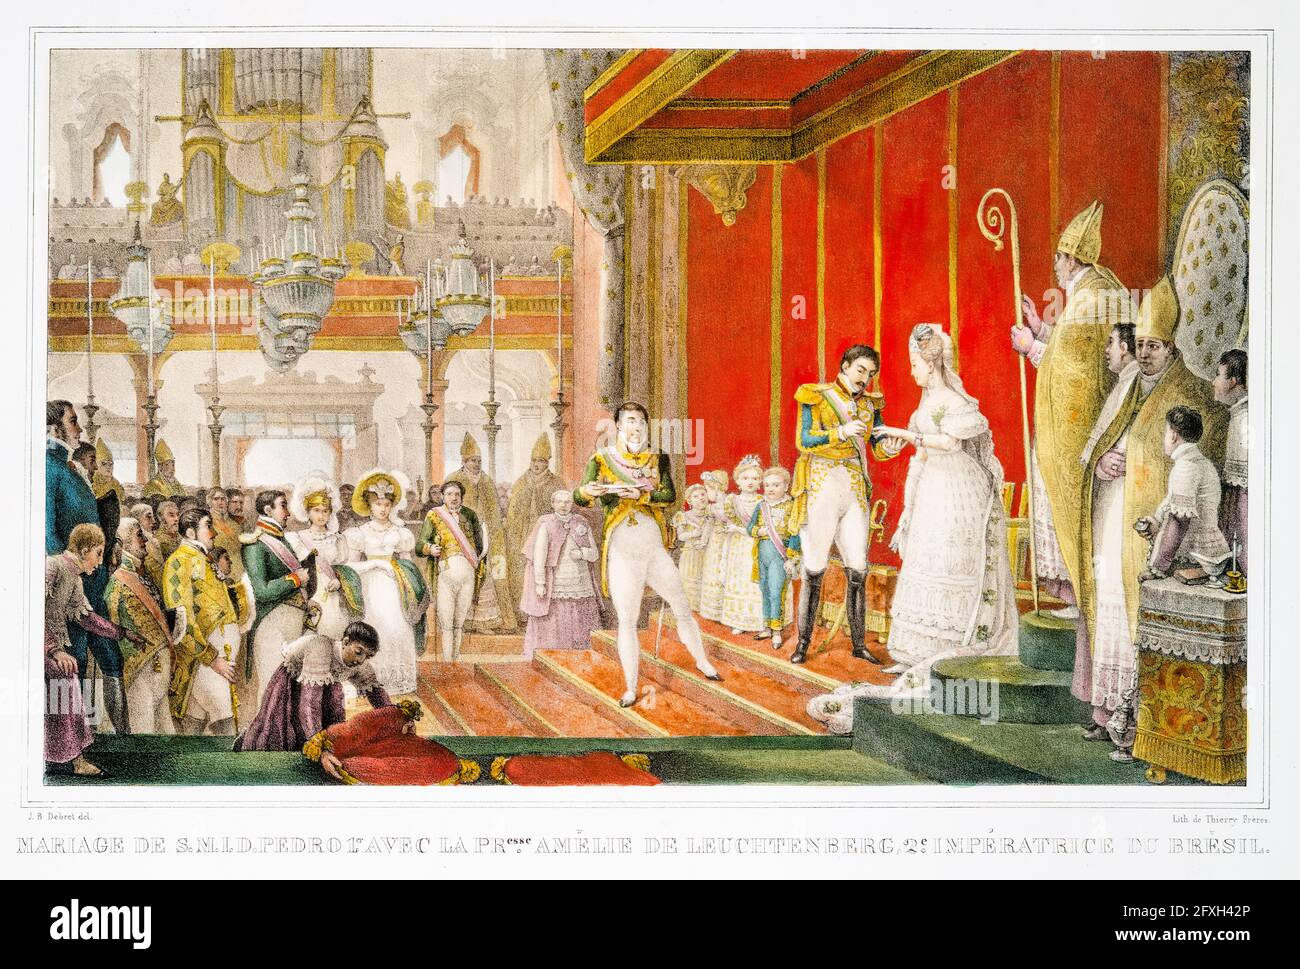 Marriage (wedding) of Dom Pedro I (1798-1834) Emperor of Brazil to his second wife Amélie of Leuchtenberg (1812-1873), Empress consort of Brazil (1829-1831) in 1829, lithographic print by Jean Baptiste Debret, 1834-1839 Stock Photo